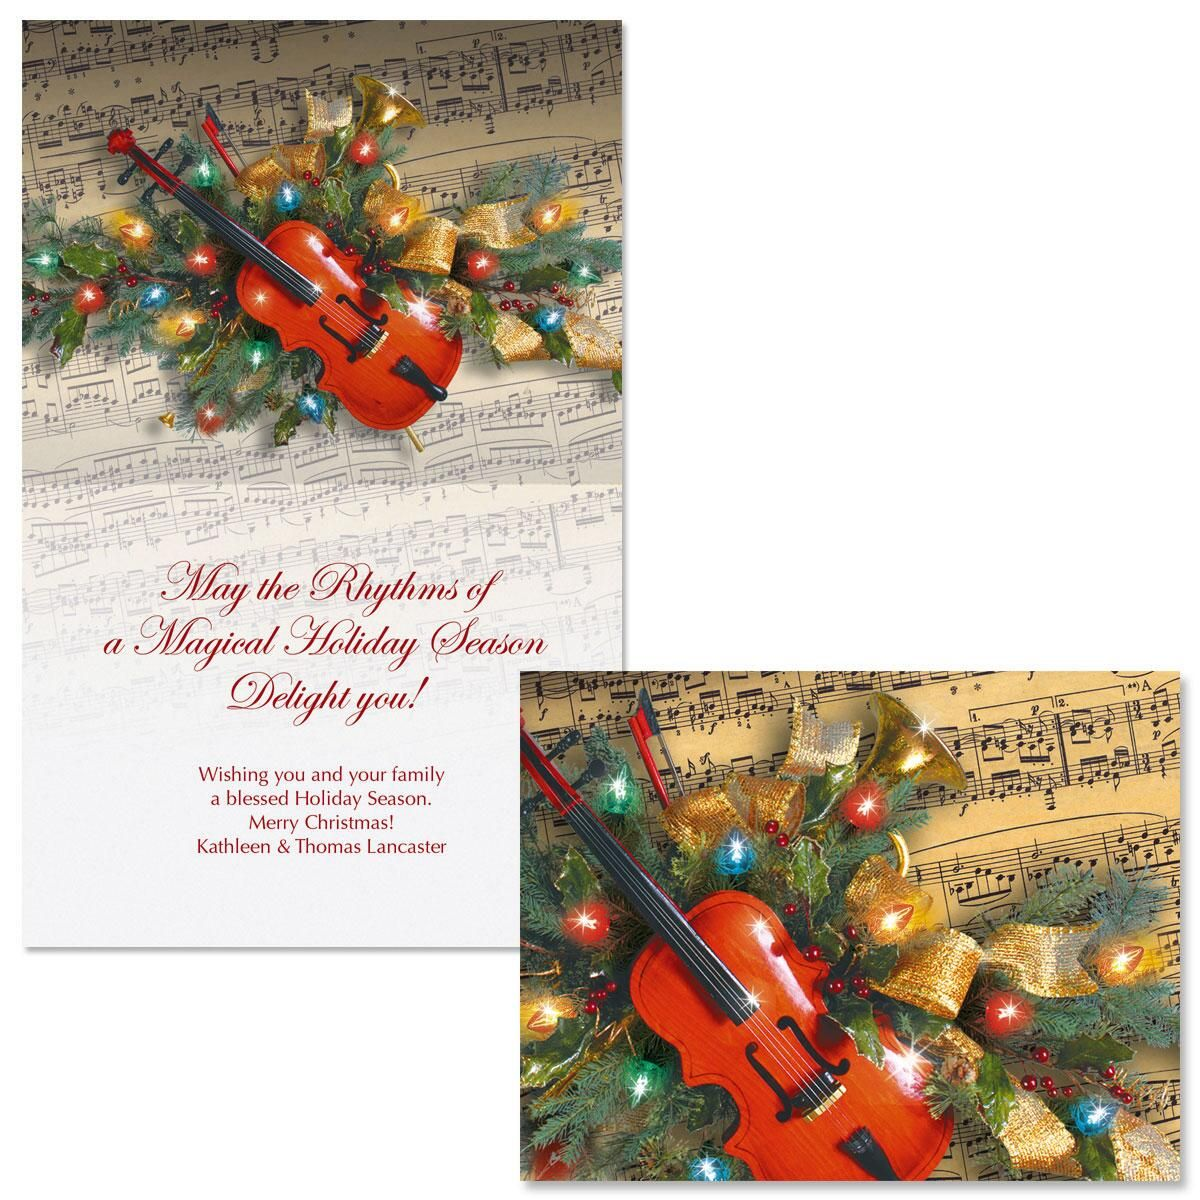 Christmas Music Note Card Size Christmas Cards | Colorful Images